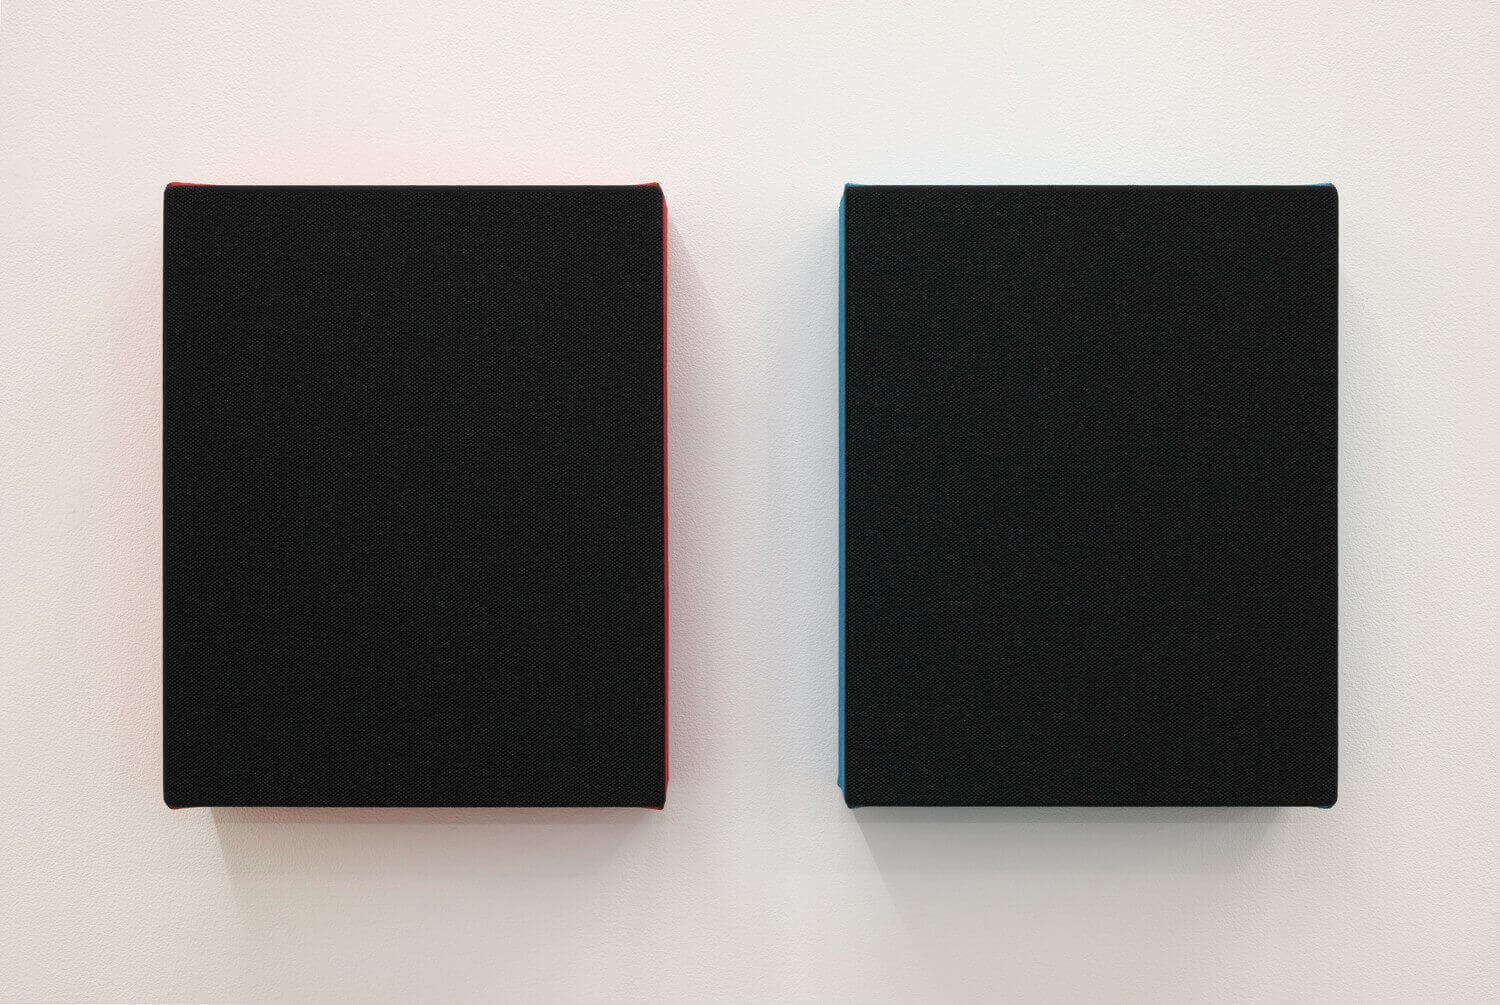 Text No.1122 / acrylic on cotton, 280 x 229 x 50 mm, each (set of 2), 2017